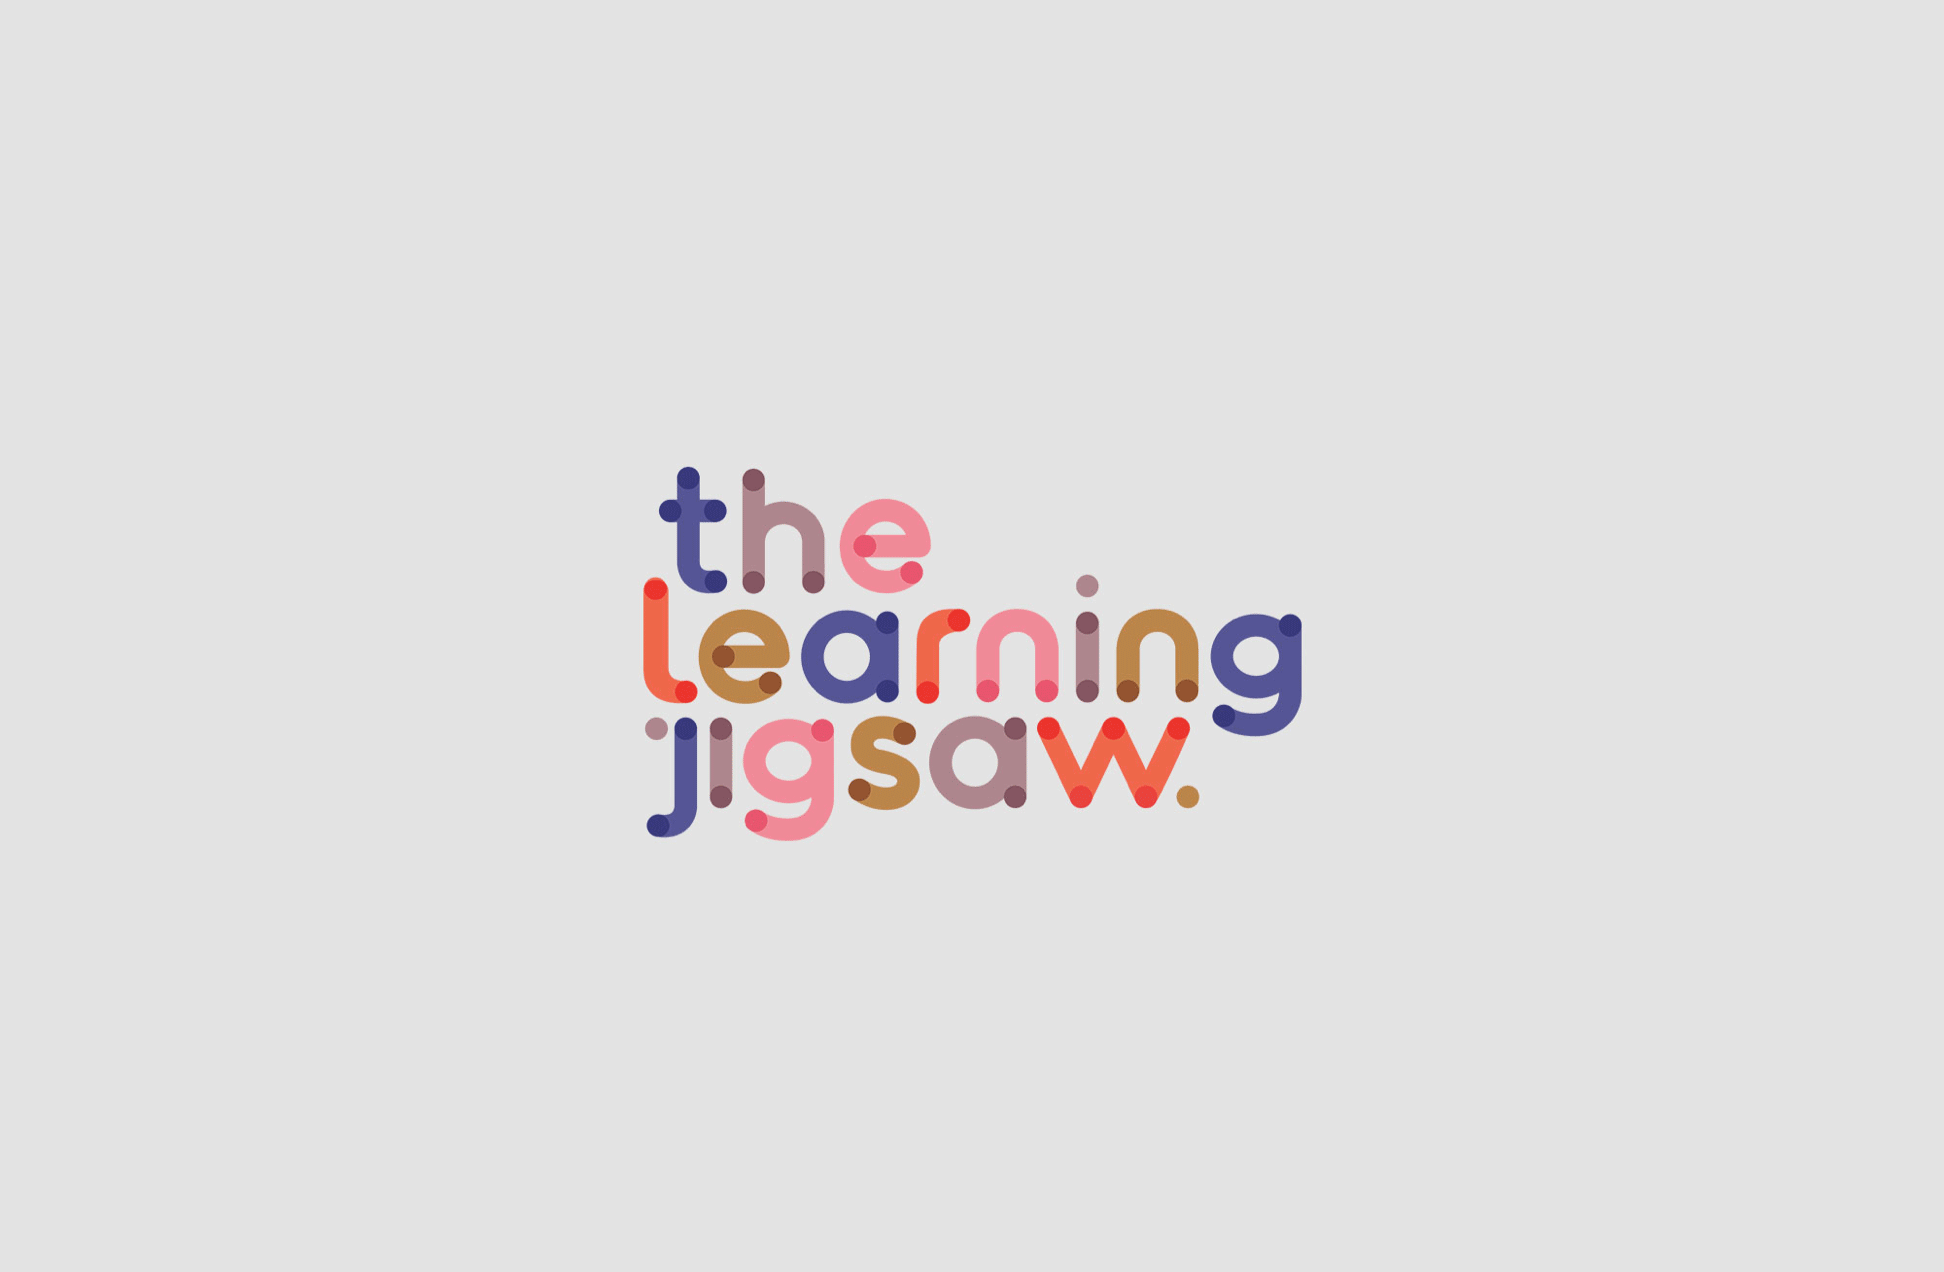 The Learning Jigsaw branding